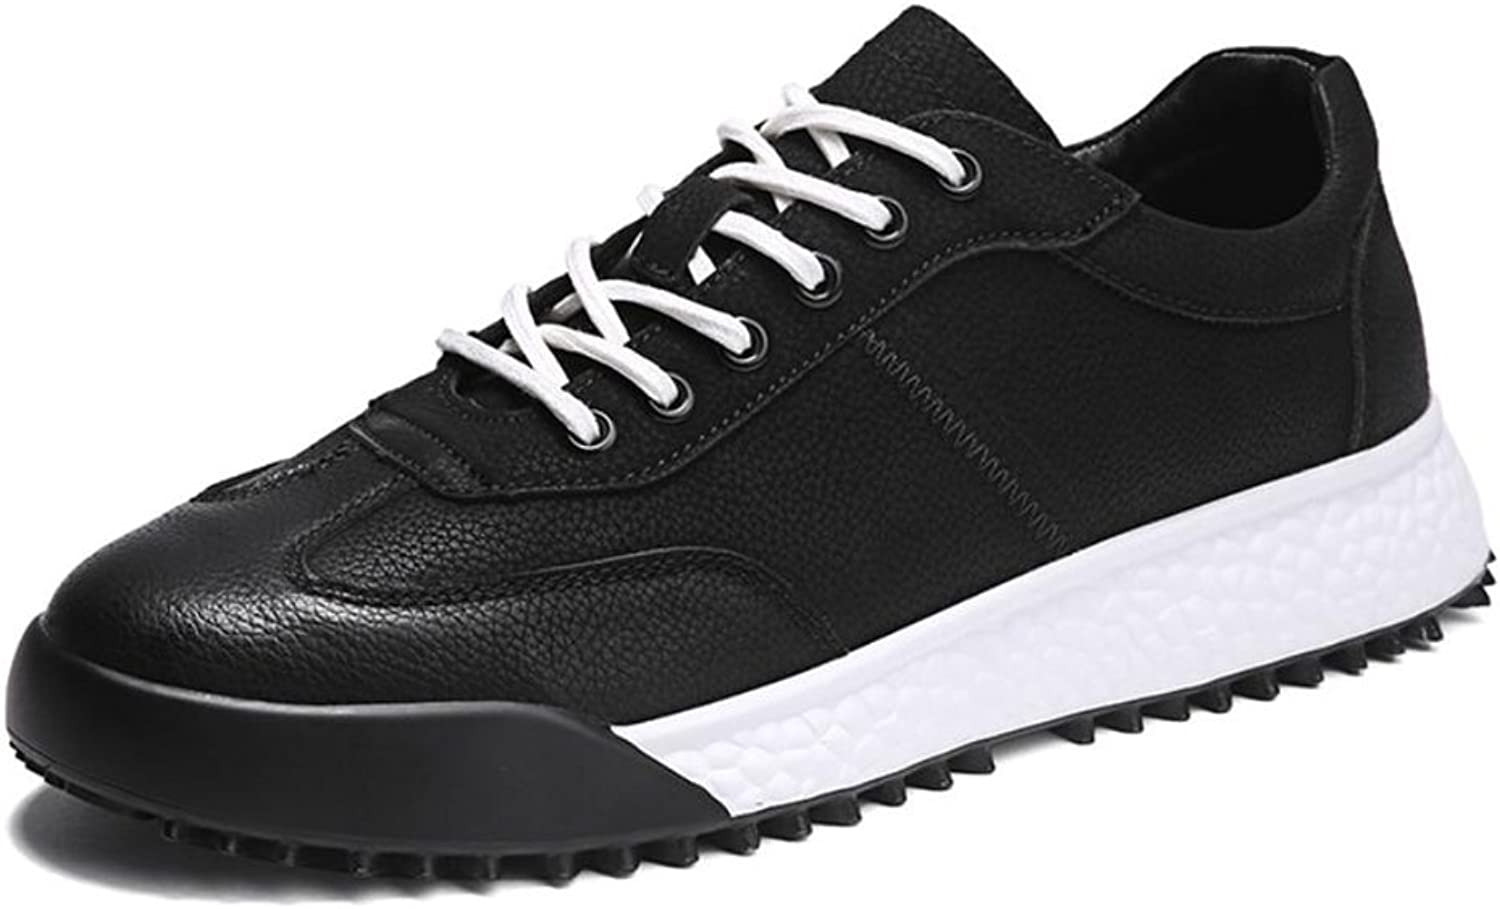 Men's Athletic shoes, Suede,Spring Fall,Comfort Low-Top Sneakers,Non-Slip Travel,Breathable Running shoes,Lightweight Walking shoes, Light Soles (color   A, Size   41)